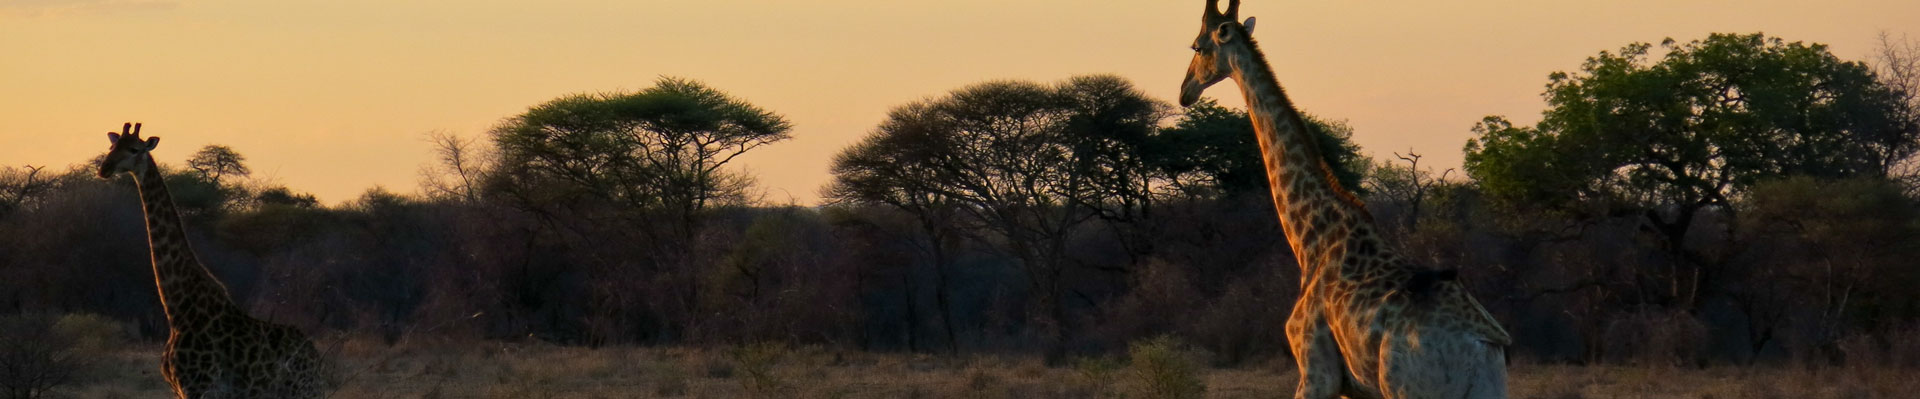 giraffe strolling at sunset at Melorani Safaris